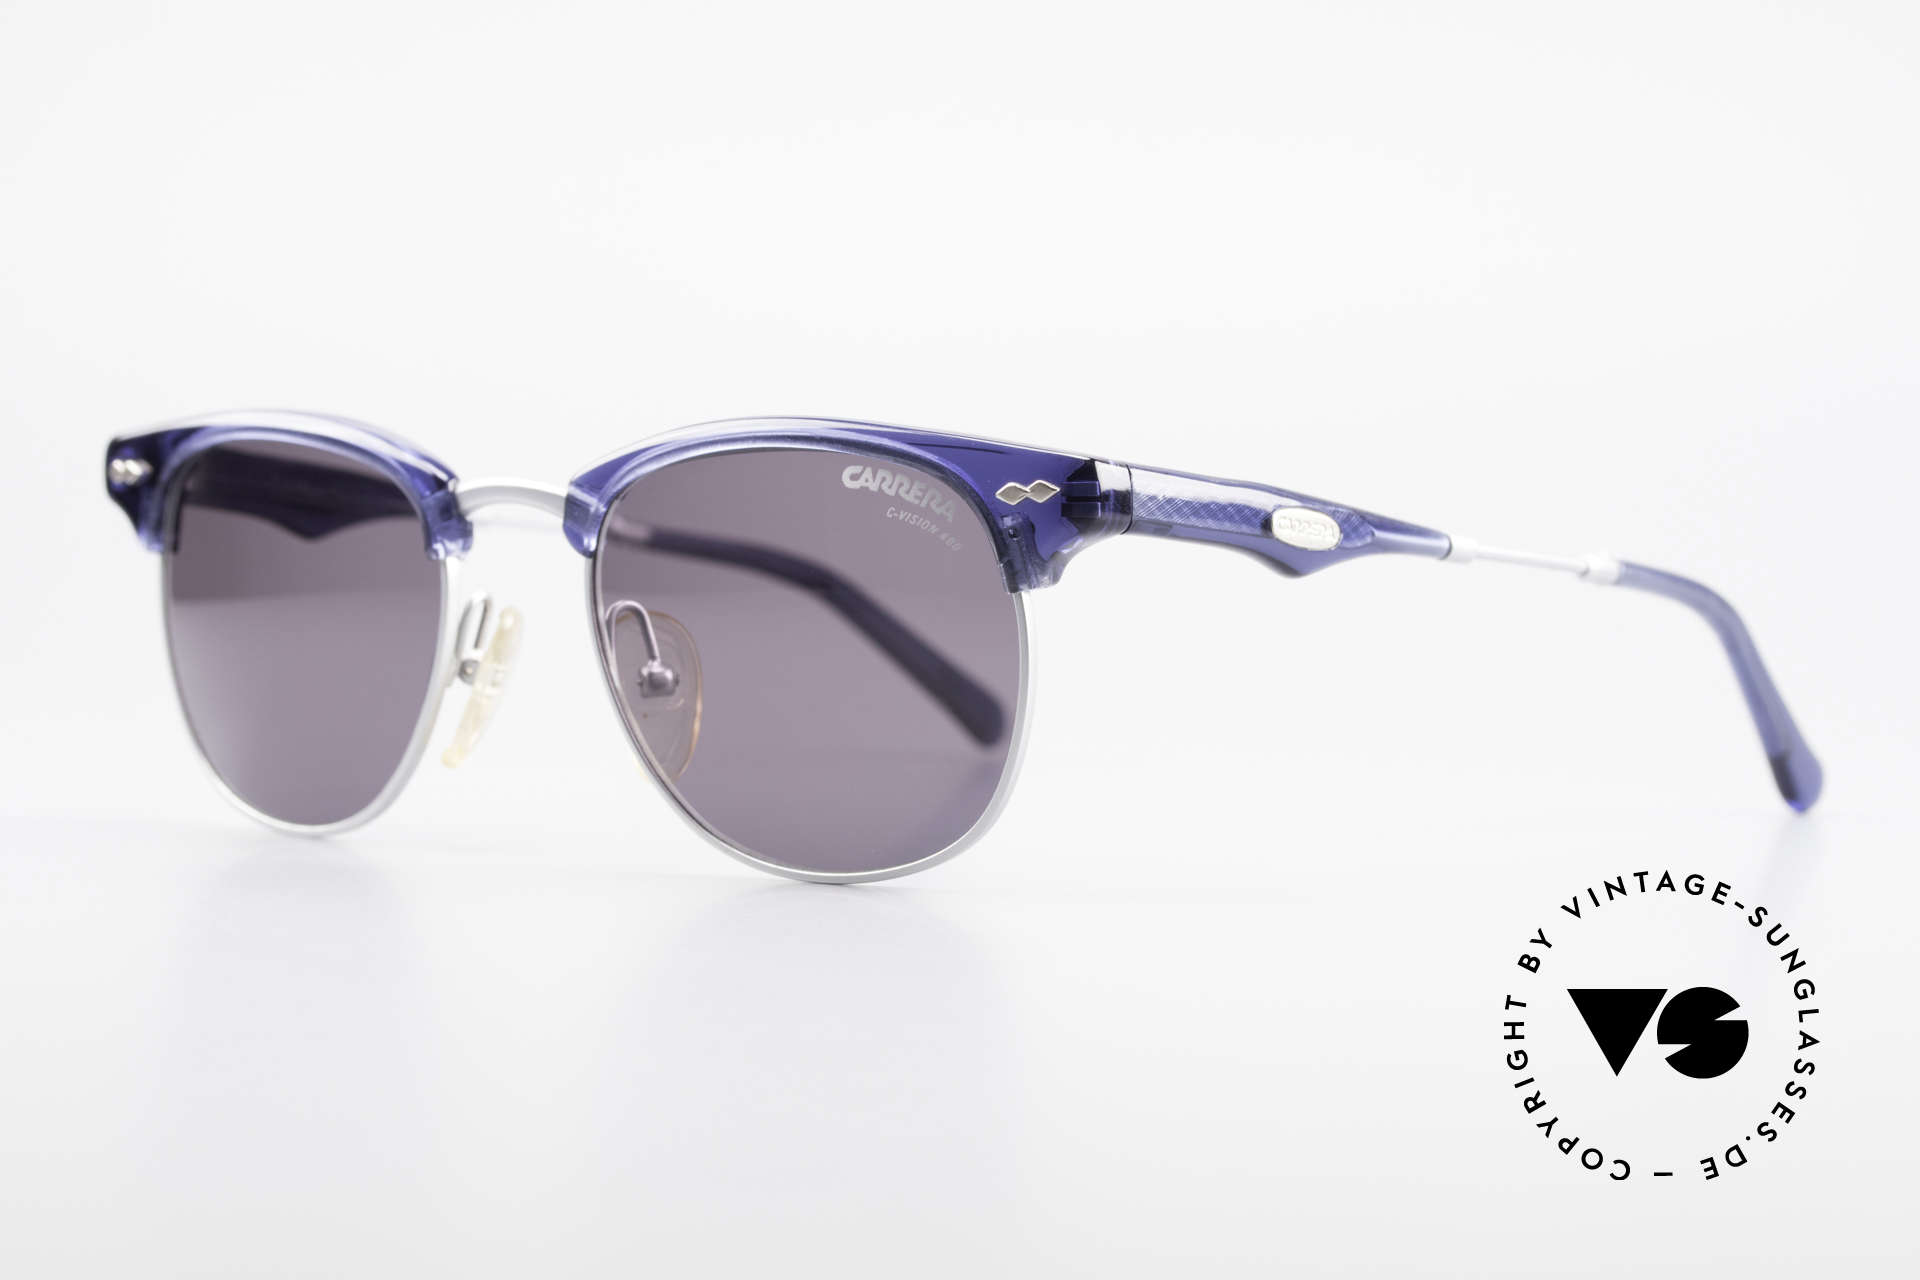 Carrera 5324 Vintage Panto Sunglasses 90s, distinctive PANTO frame design & premium quality, Made for Men